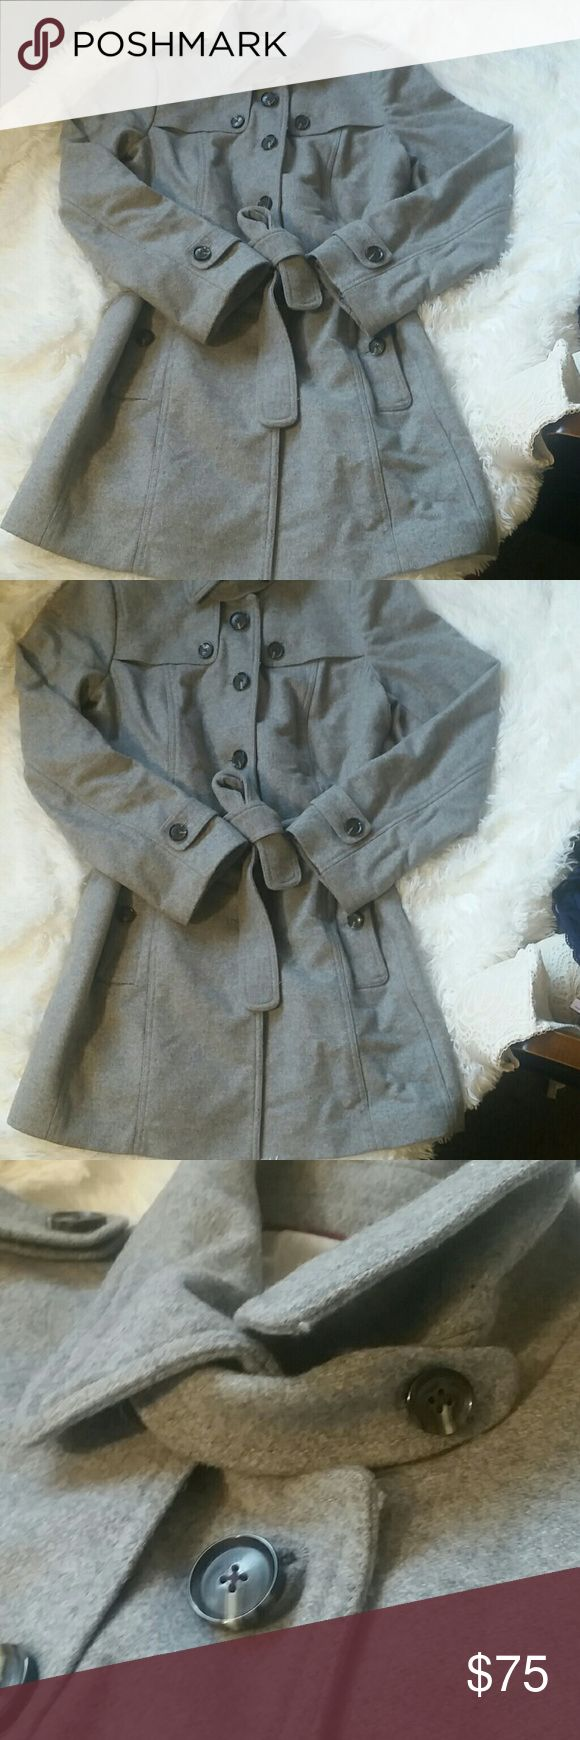 Banana Republic wool winter coat Grey wool winter coat by Banana Republic. In excellent used condition. Beautifully lined with red piping. Extra button still attached inside! Banana Republic Jackets & Coats Pea Coats